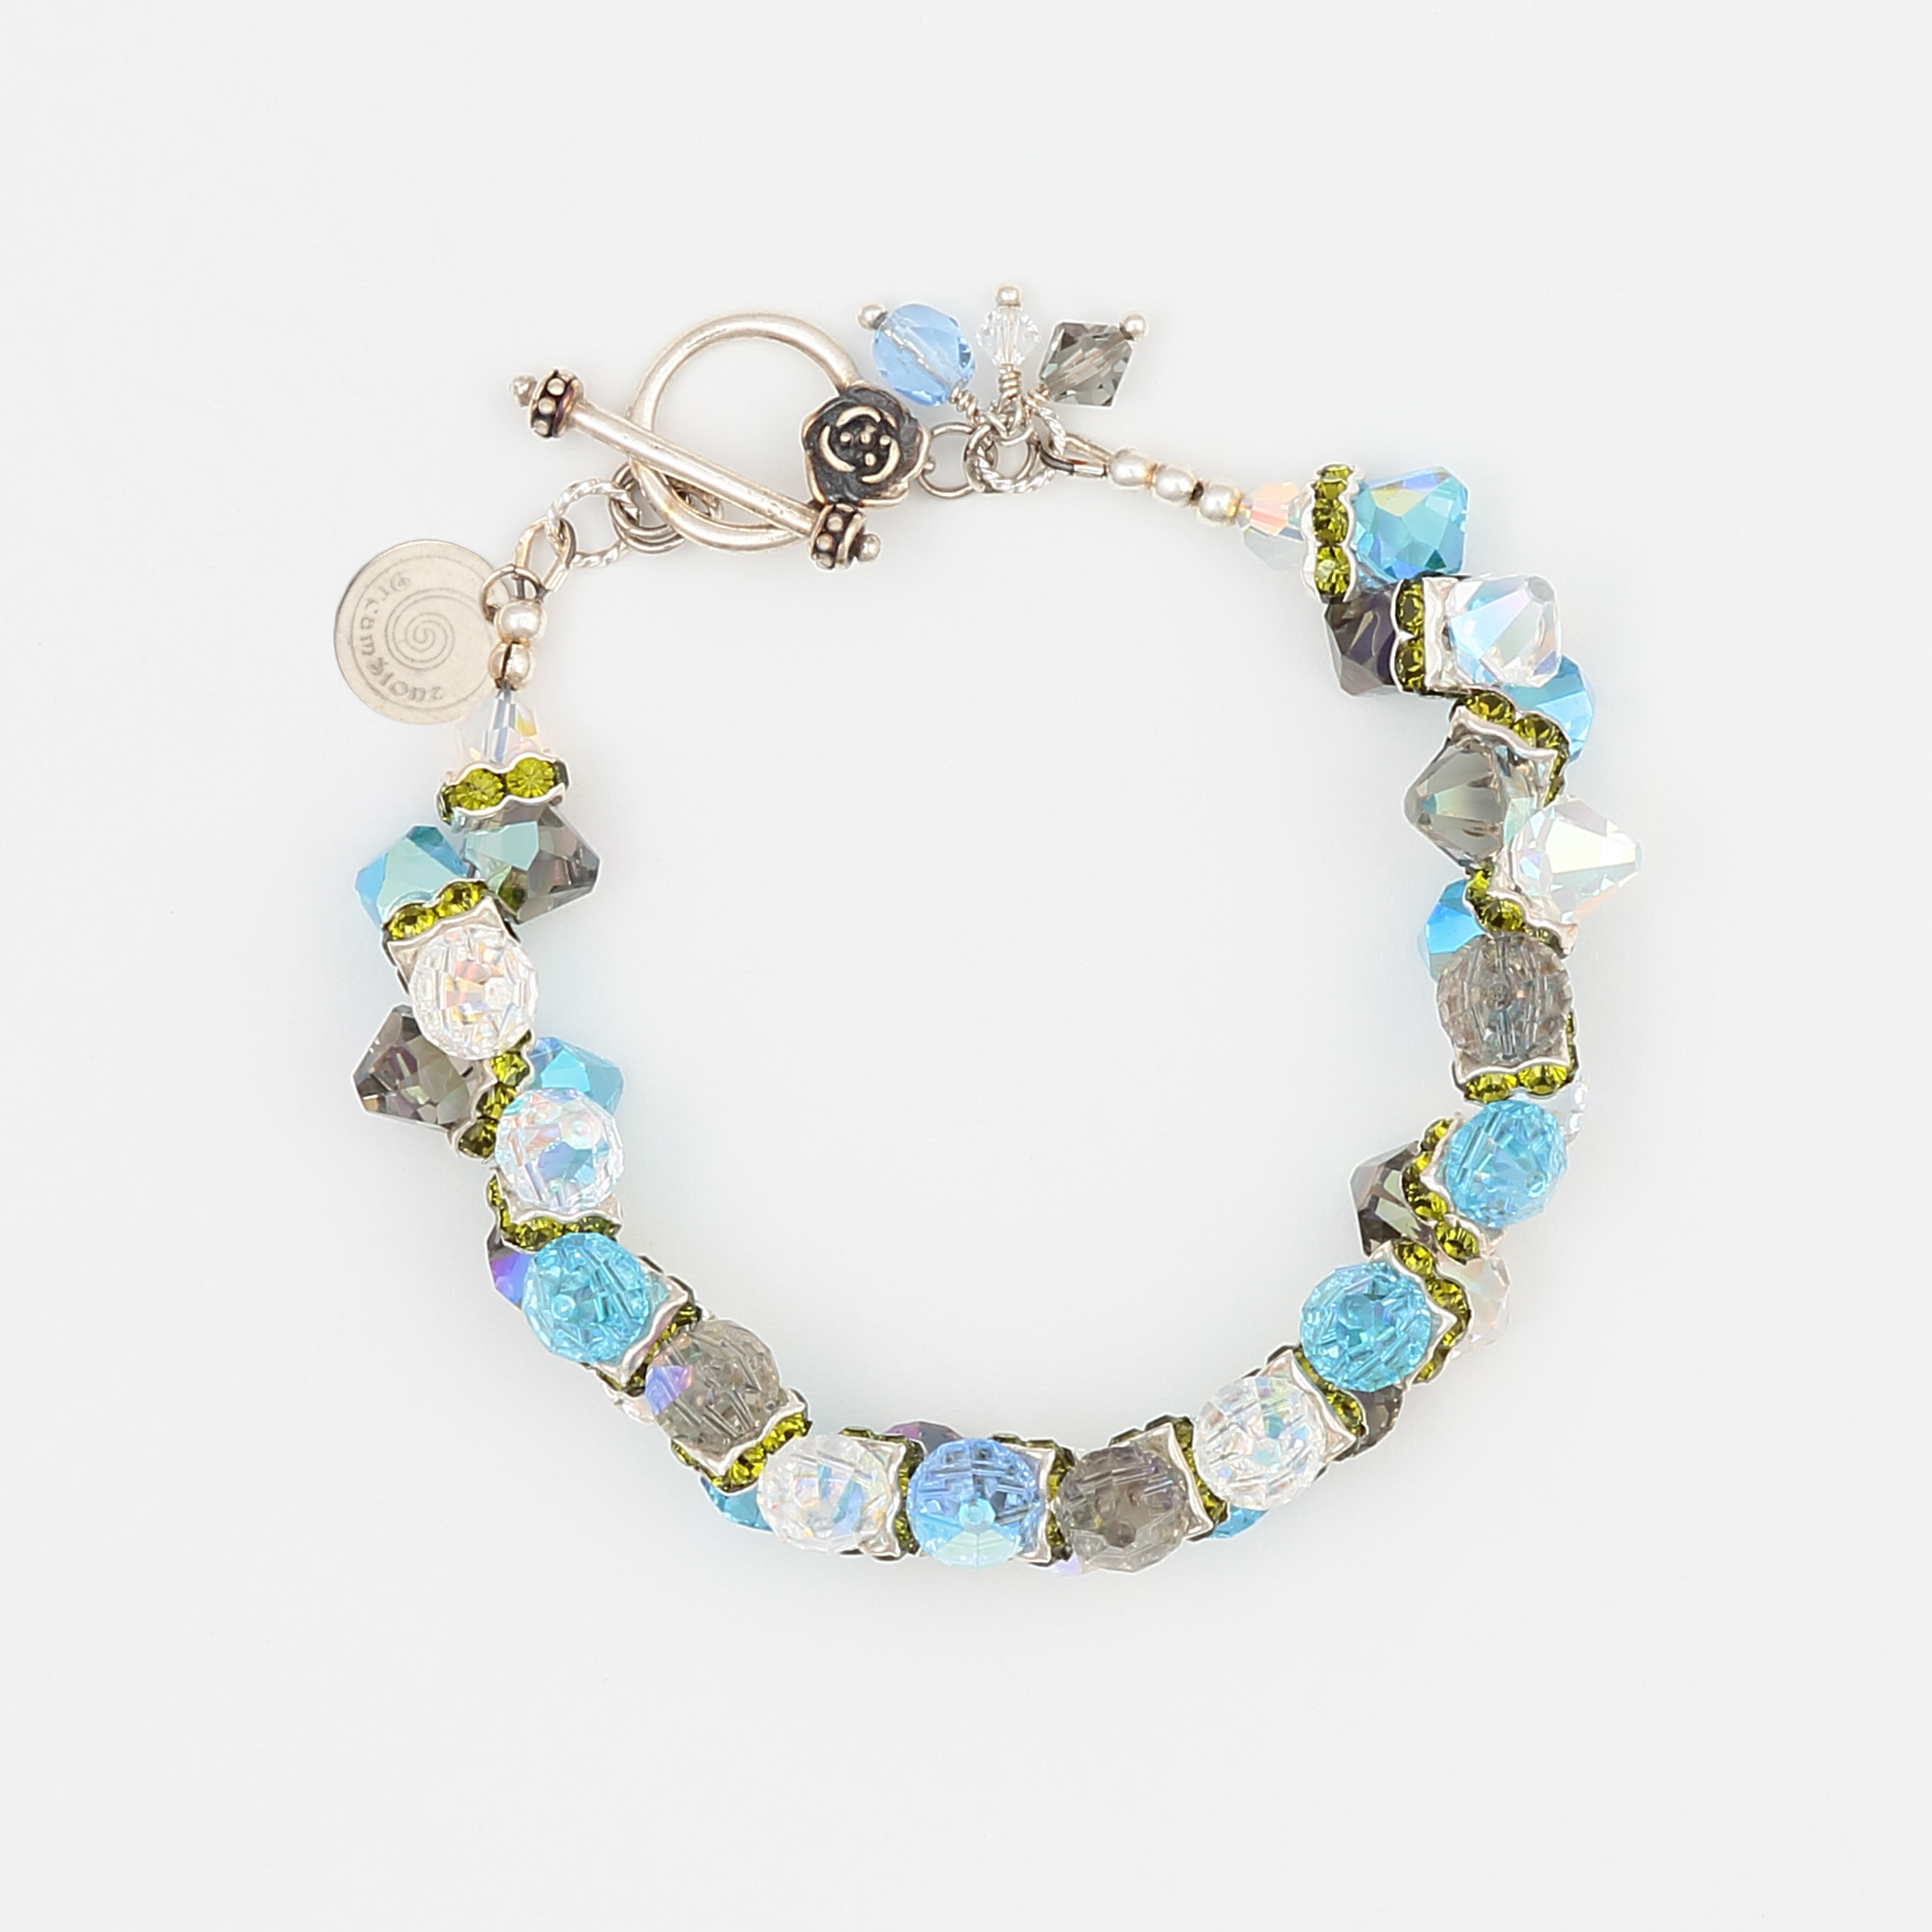 Sea Grass Bracelet- grey, clear rainbow sheen, green and blue Swarovski crystals in a sterling silver bracelet